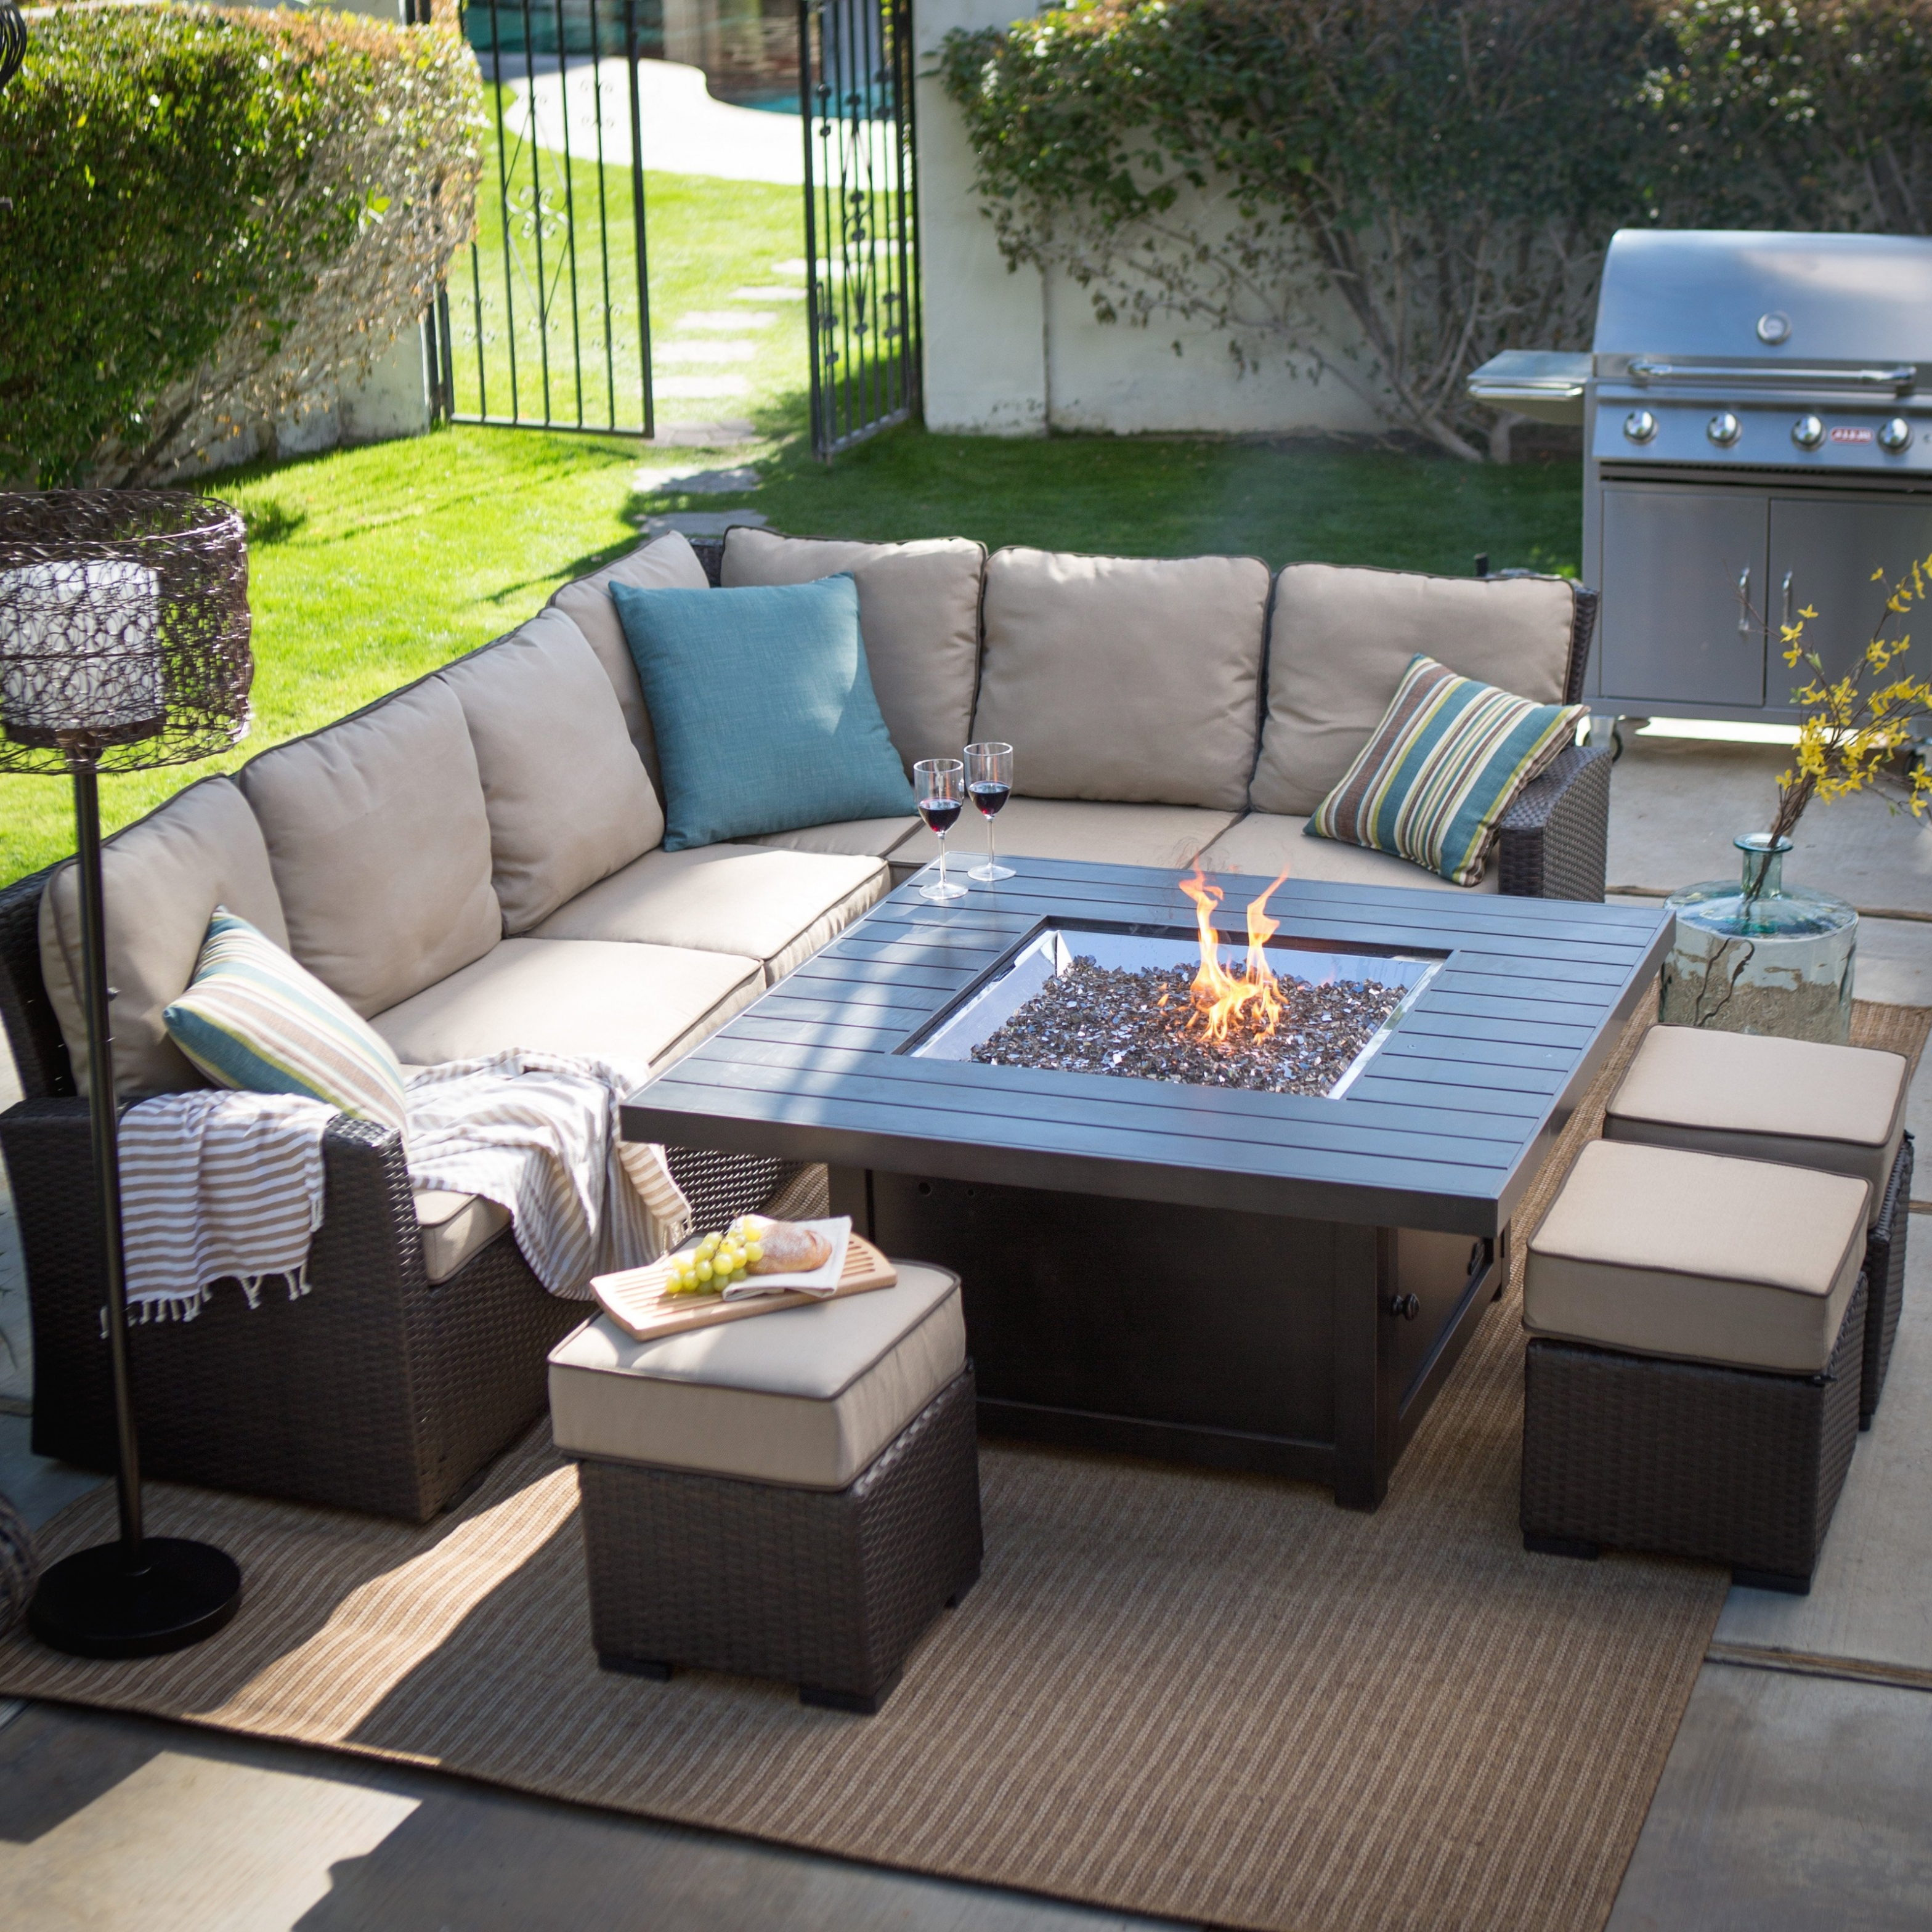 Latest Revisited Fire Pit Conversation Sets Shrewd Patio Furniture Decor With Patio Furniture Conversation Sets With Fire Pit (View 10 of 15)